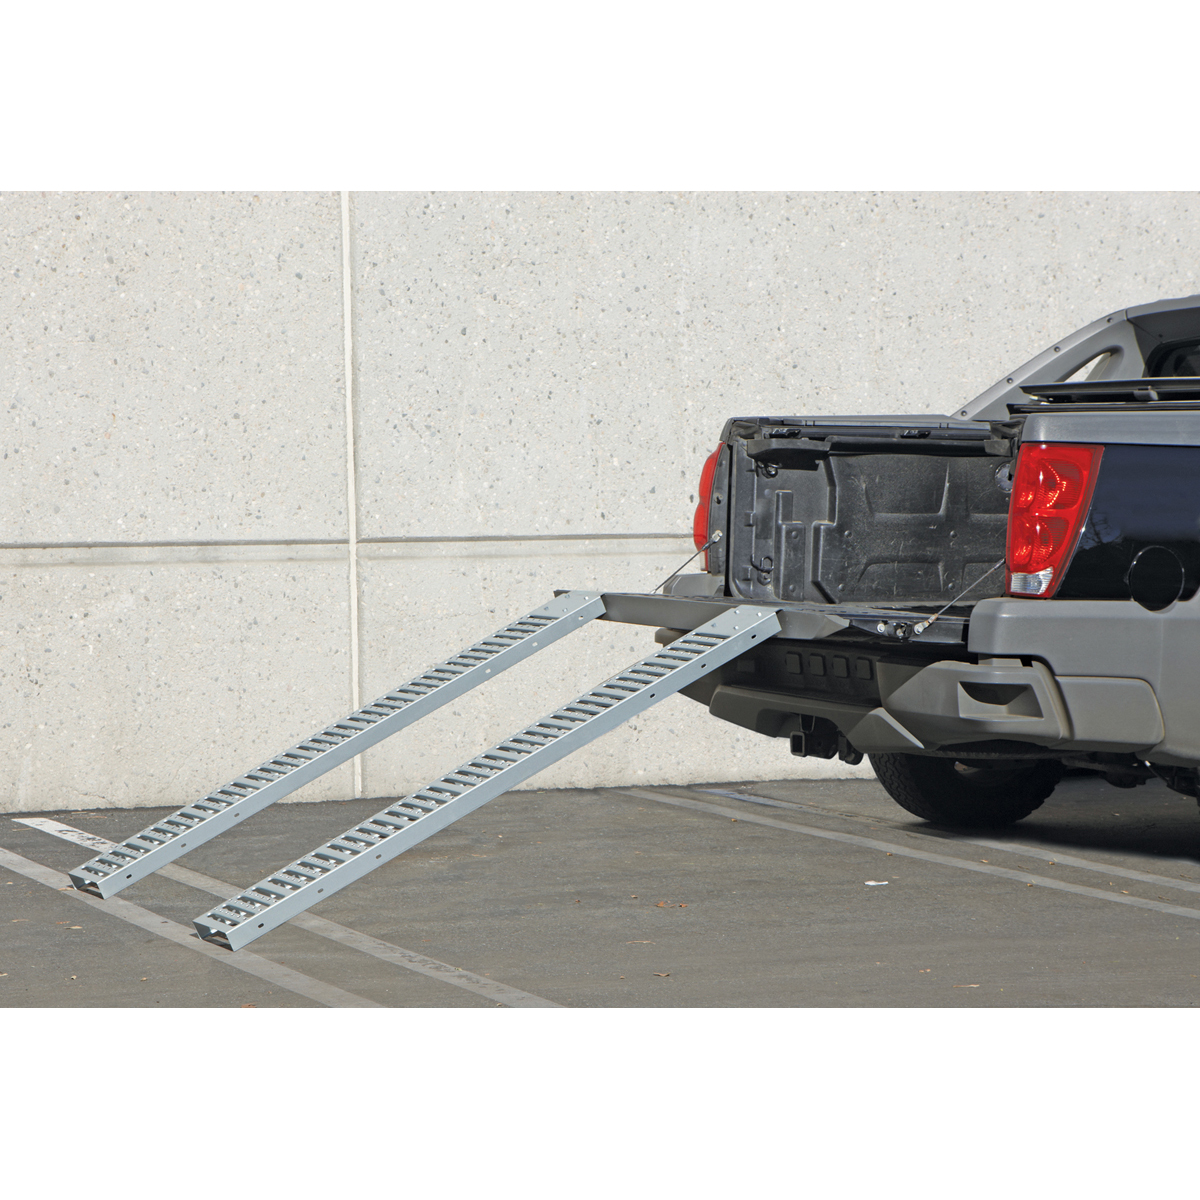 1000 Lbs Capacity 9 In X 72 In Steel Loading Ramps Set